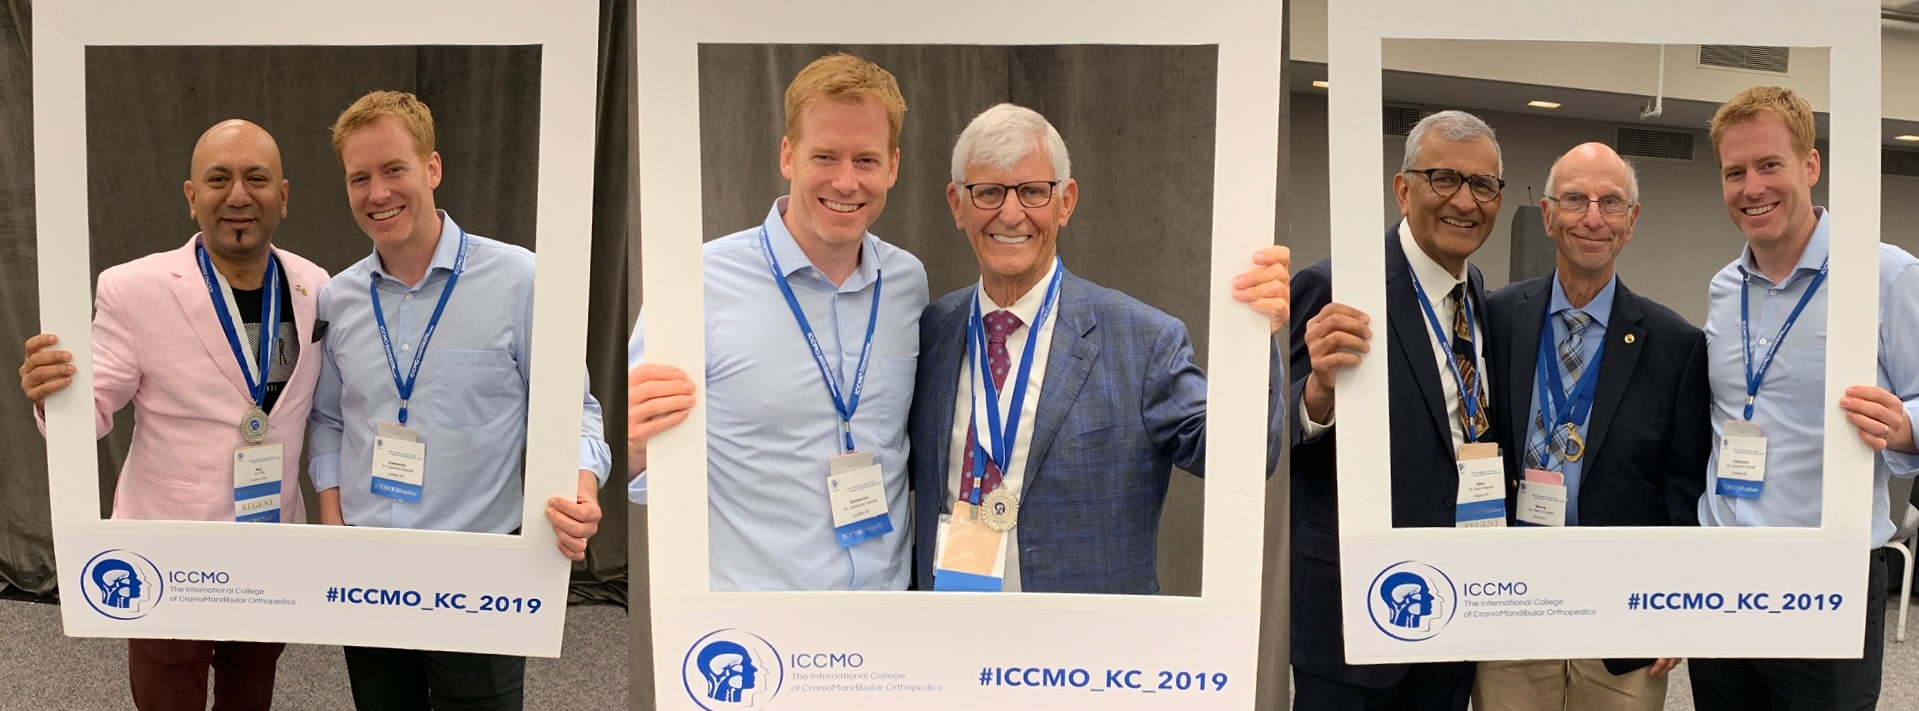 Langley, BC dentist Dr. Garrett at the ICCMO conference